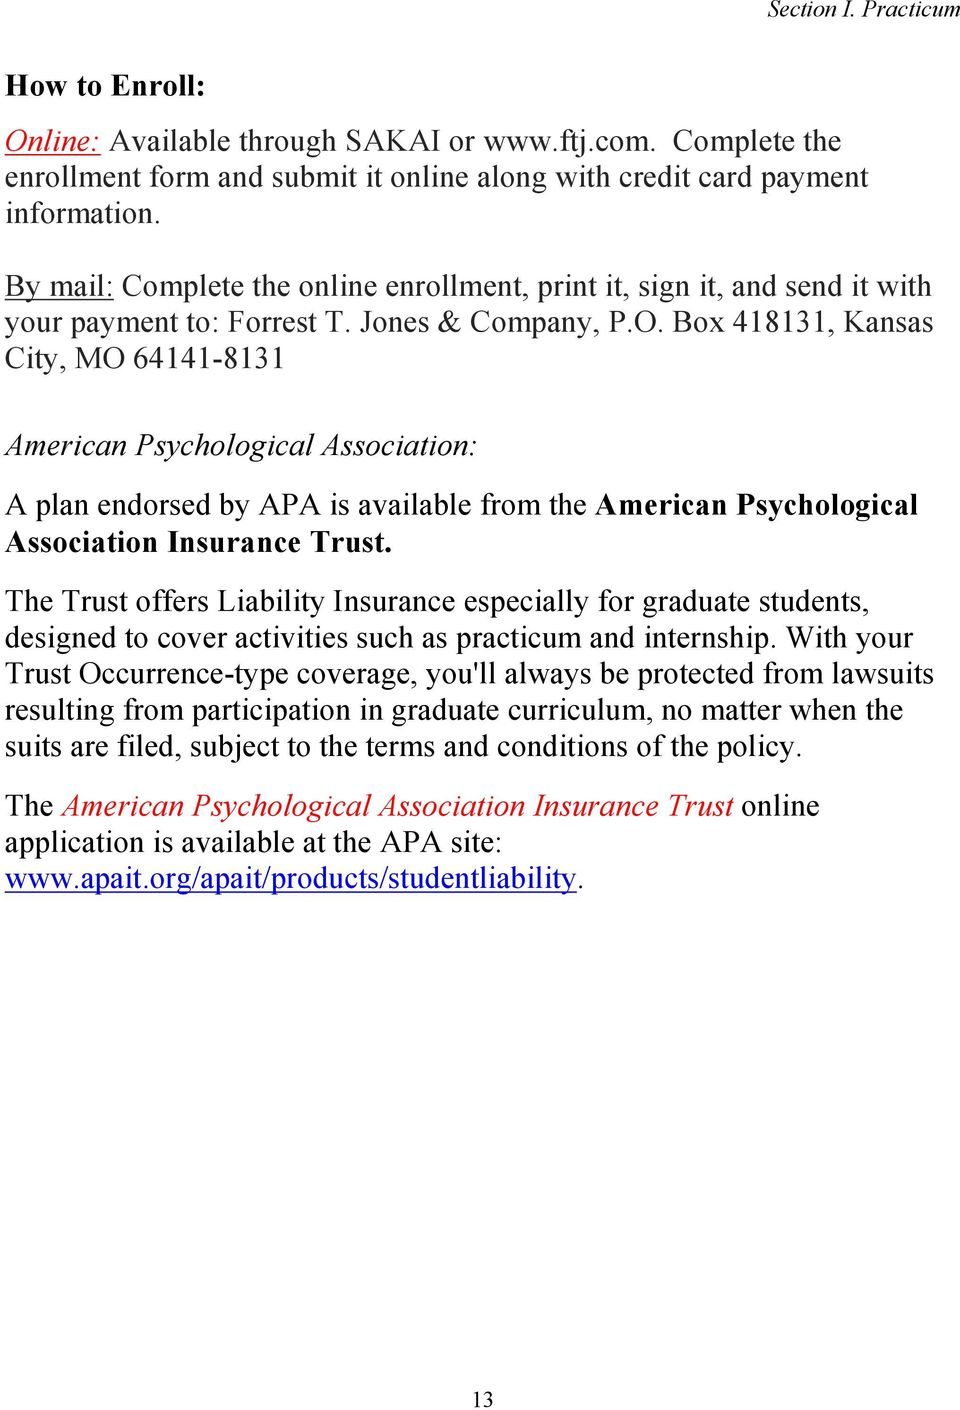 Box 418131, Kansas City, MO 64141-8131 American Psychological Association: A plan endorsed by APA is available from the American Psychological Association Insurance Trust.